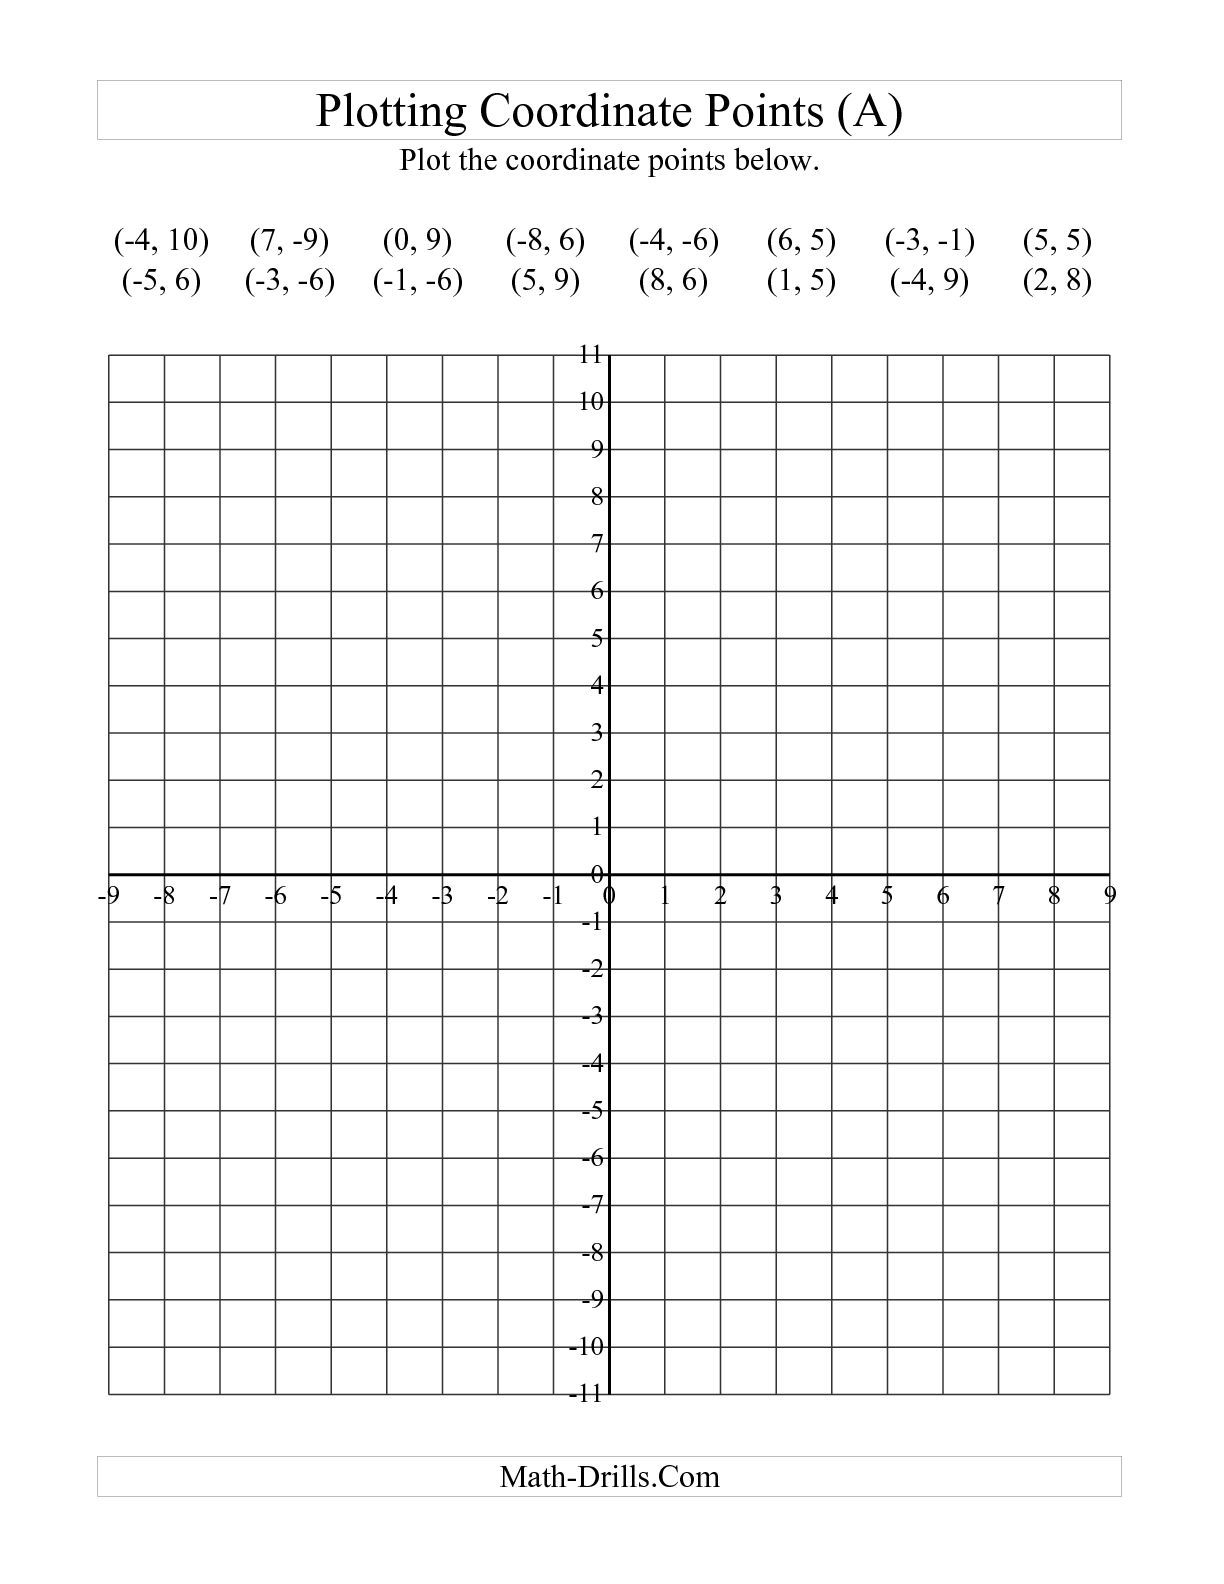 The Plotting Coordinate Points All Math Worksheet From